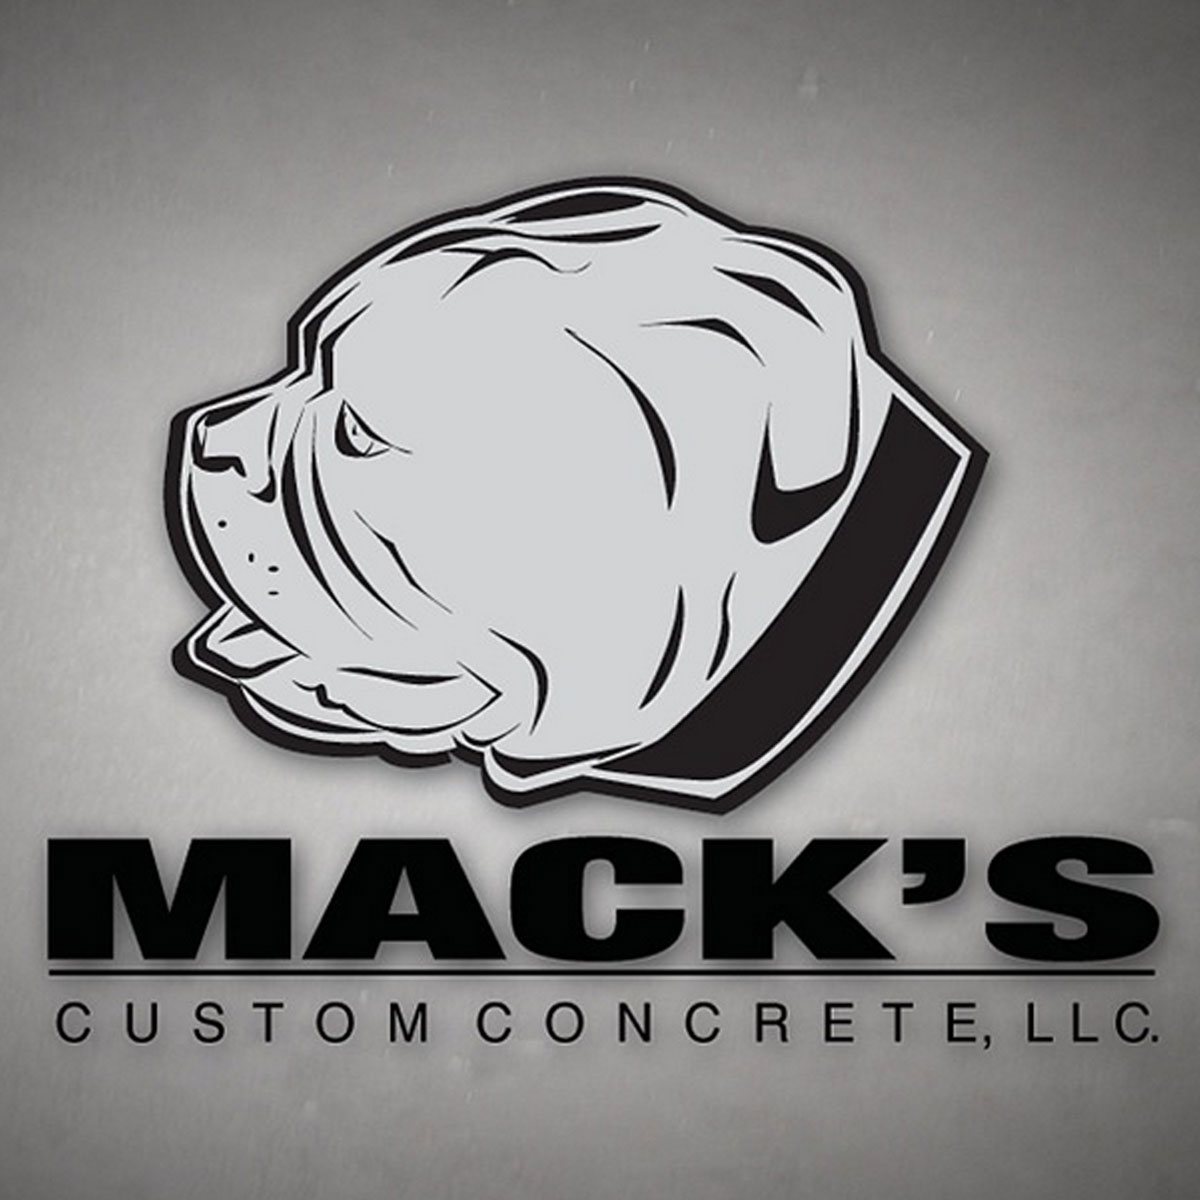 MACKS_CUSTOM_CONCRETE_LOGO